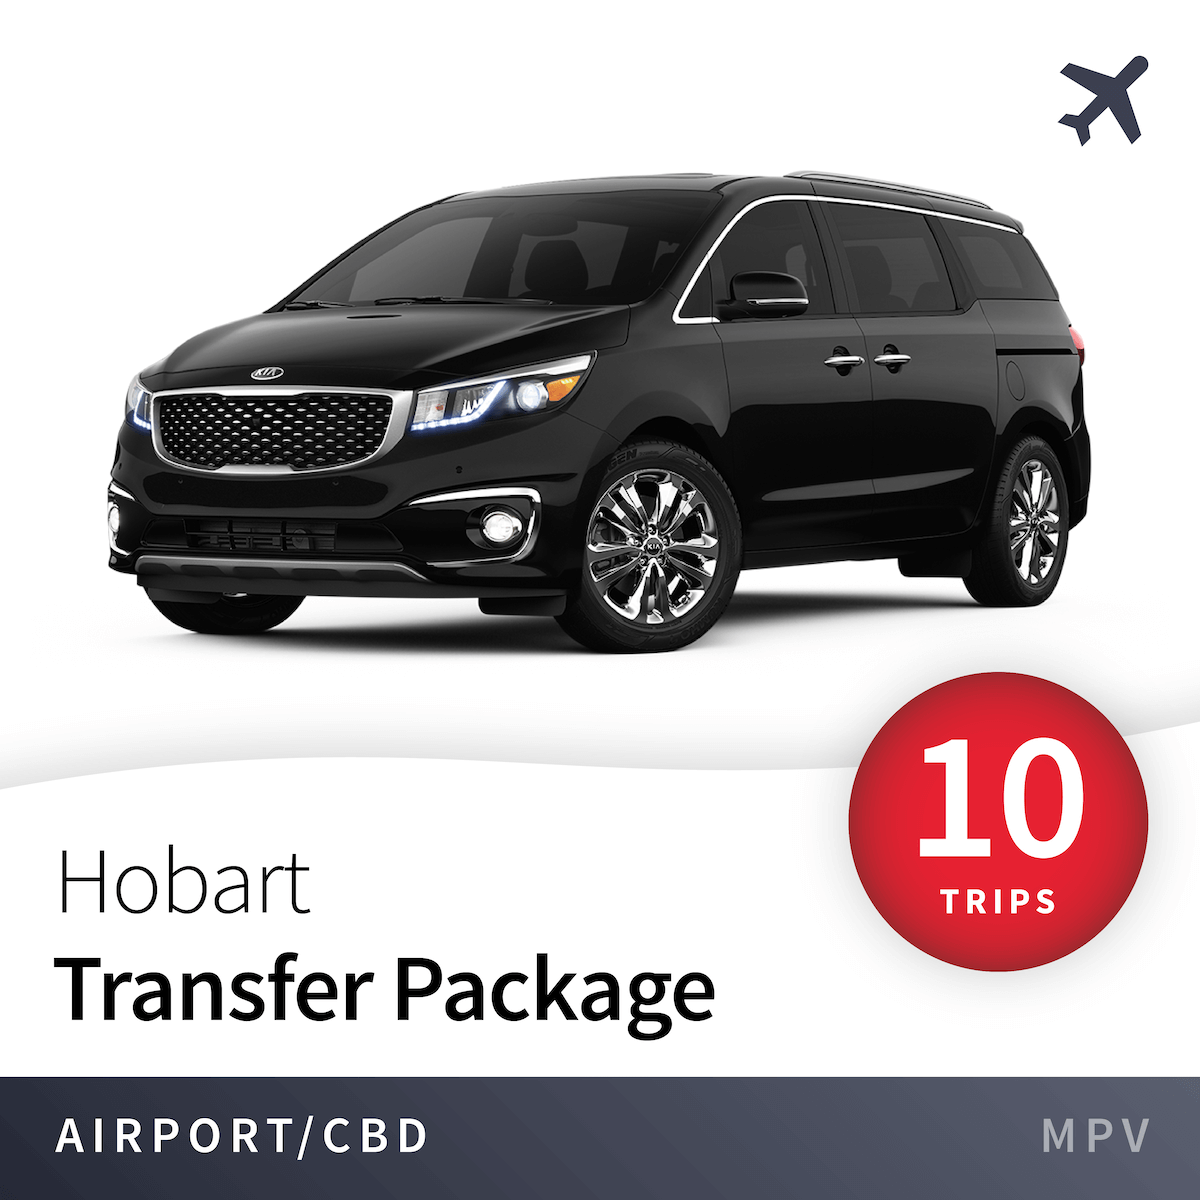 Hobart Airport Transfer Package - MPV (10 Trips) 1